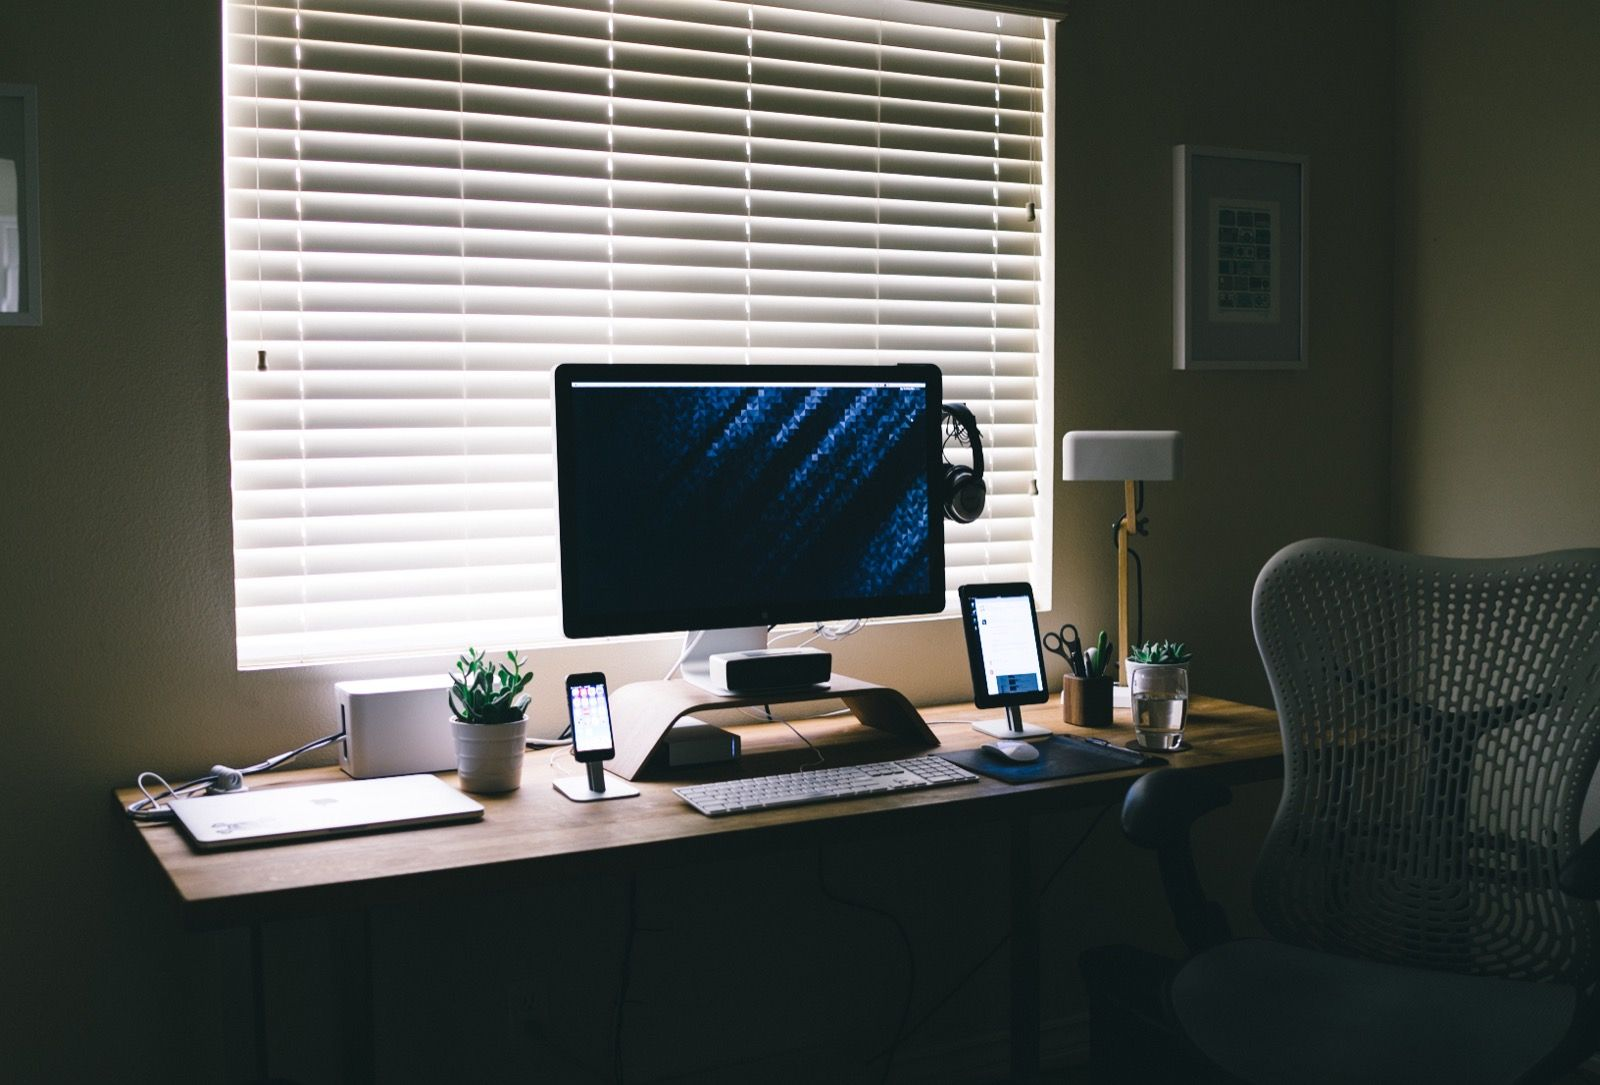 developer office. Interview With Software Designer And Developer Aubrey Johnson About His Home Office, Focus Self Office